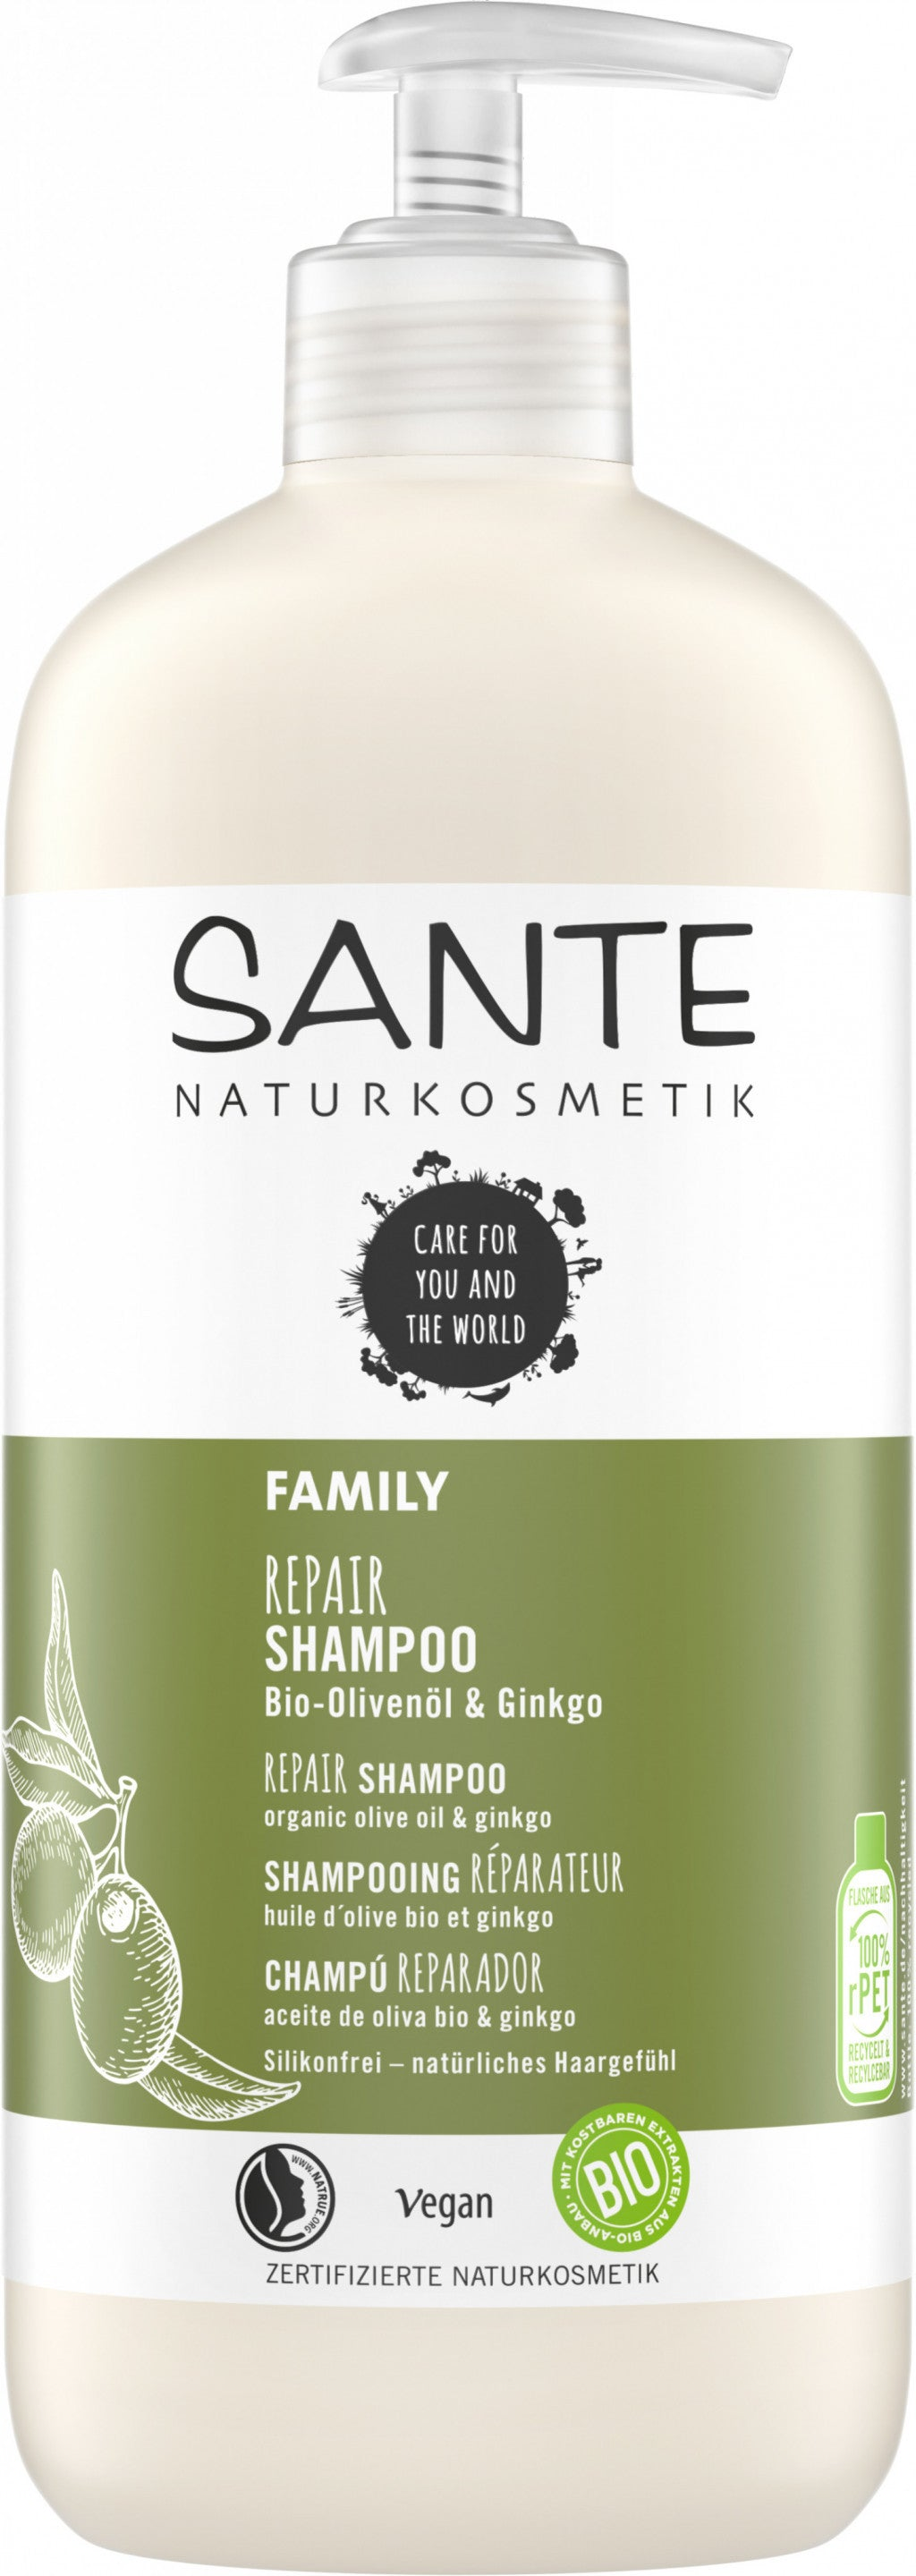 Repair Shampoo Organic Olive Oil & Ginkgo, 500 ml